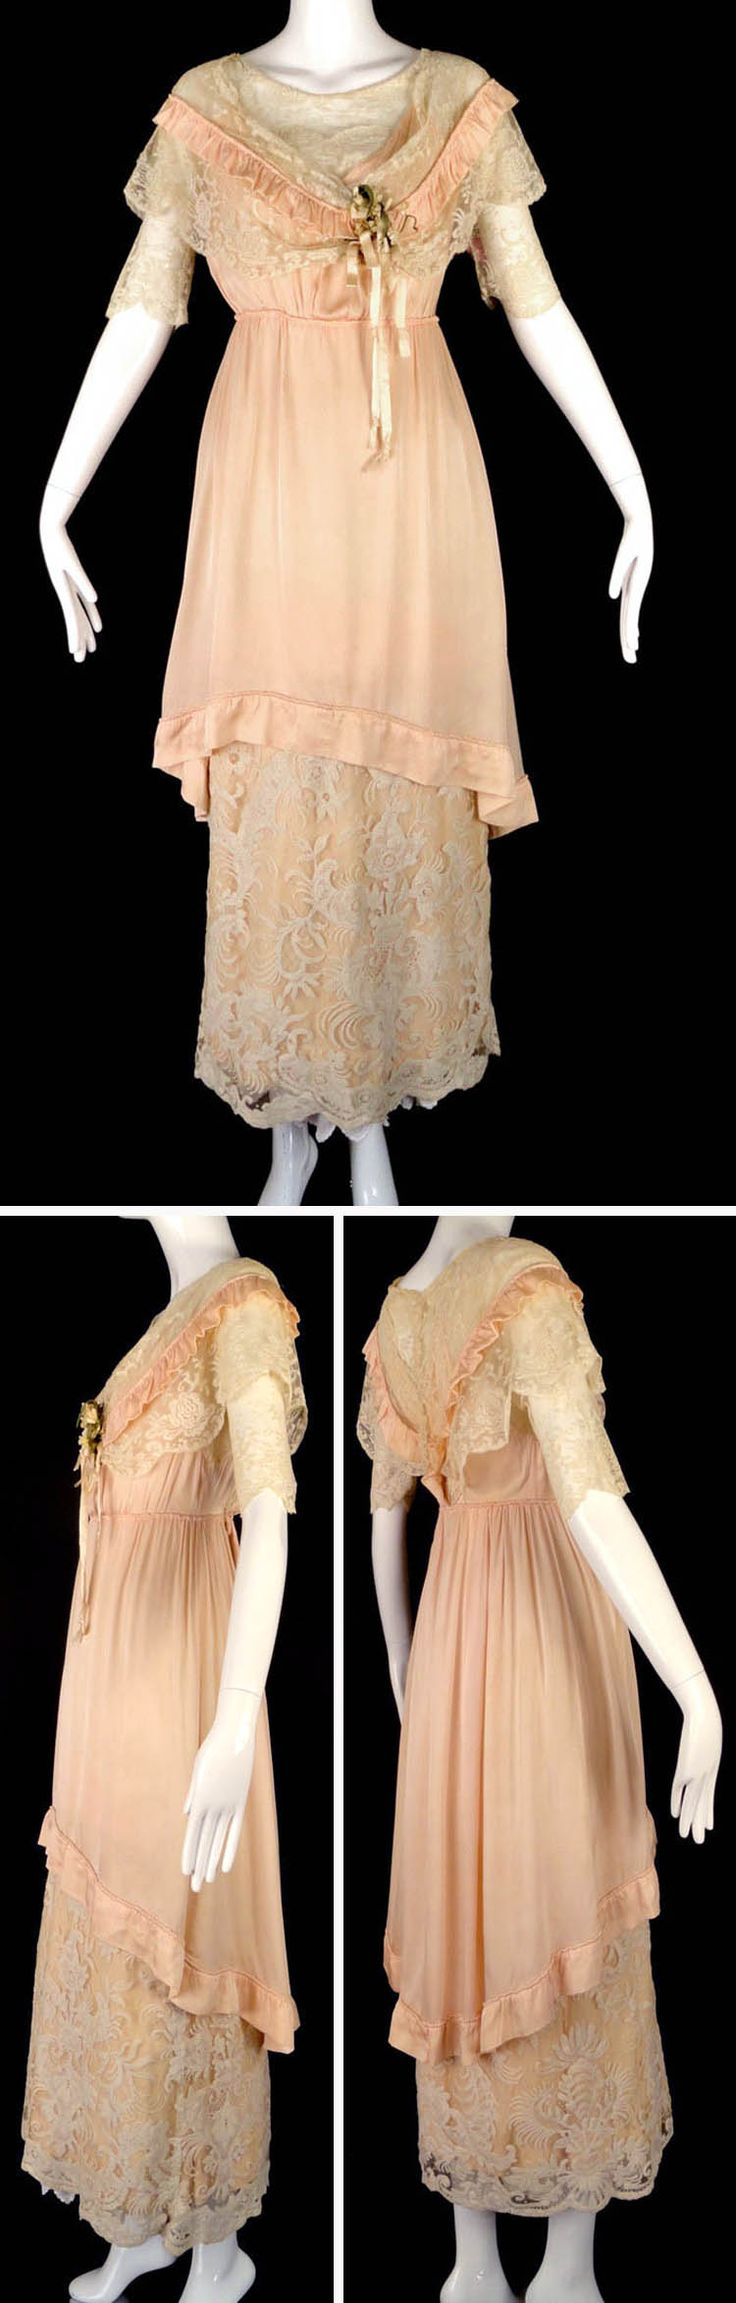 Dress ca.1912. Pink silk bodice with lace modesty & scoop neckline. Shawl collar of white lace & pink silk ruffle drapes around shoulders & meets on left with cluster of white orange blossoms & silk ribbons. Short, set-in lace sleeves, unlined. Bodice falls to natural waistline with slender, gathered skirt in muslin that has lower skirt in white lace with pink silk beneath. Shorter overskirt has self-piped border at bottom & asymmetrical hemline. Snap & hook closures in back. Vintage Martini